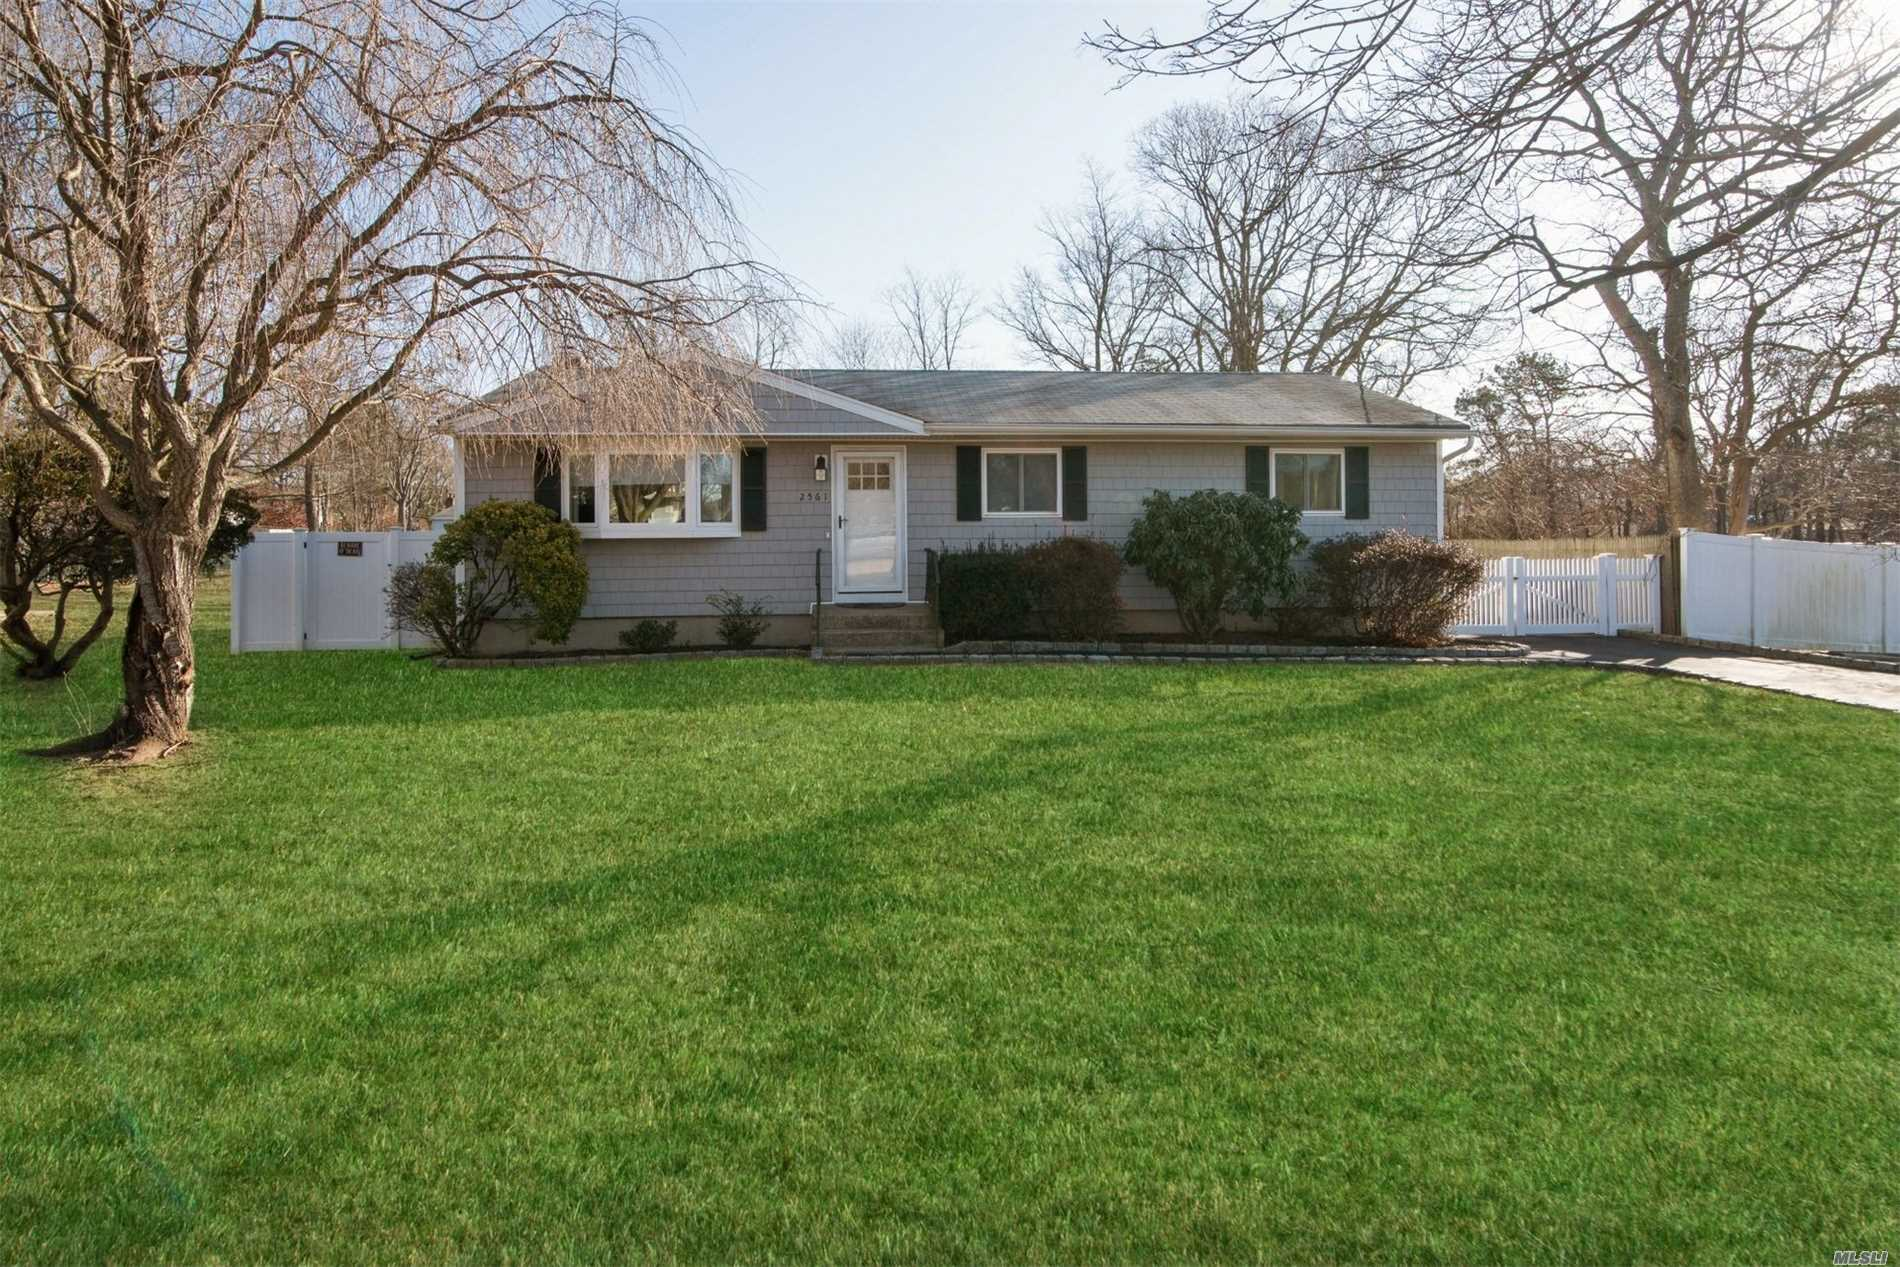 Updated Stylish Ranch Home With Huge Garage For All Your Toys!. 3 Bedrooms, 1 Full Bath. New 2018-Siding, Driveway, Pvc Fence, Insulated Windows, Hardwood Floors, Moldings, Bathroom. Detached 25 X 25 Garage With Loft And 100 Amp Service Fits 3 - 4 Cars. A Must See.